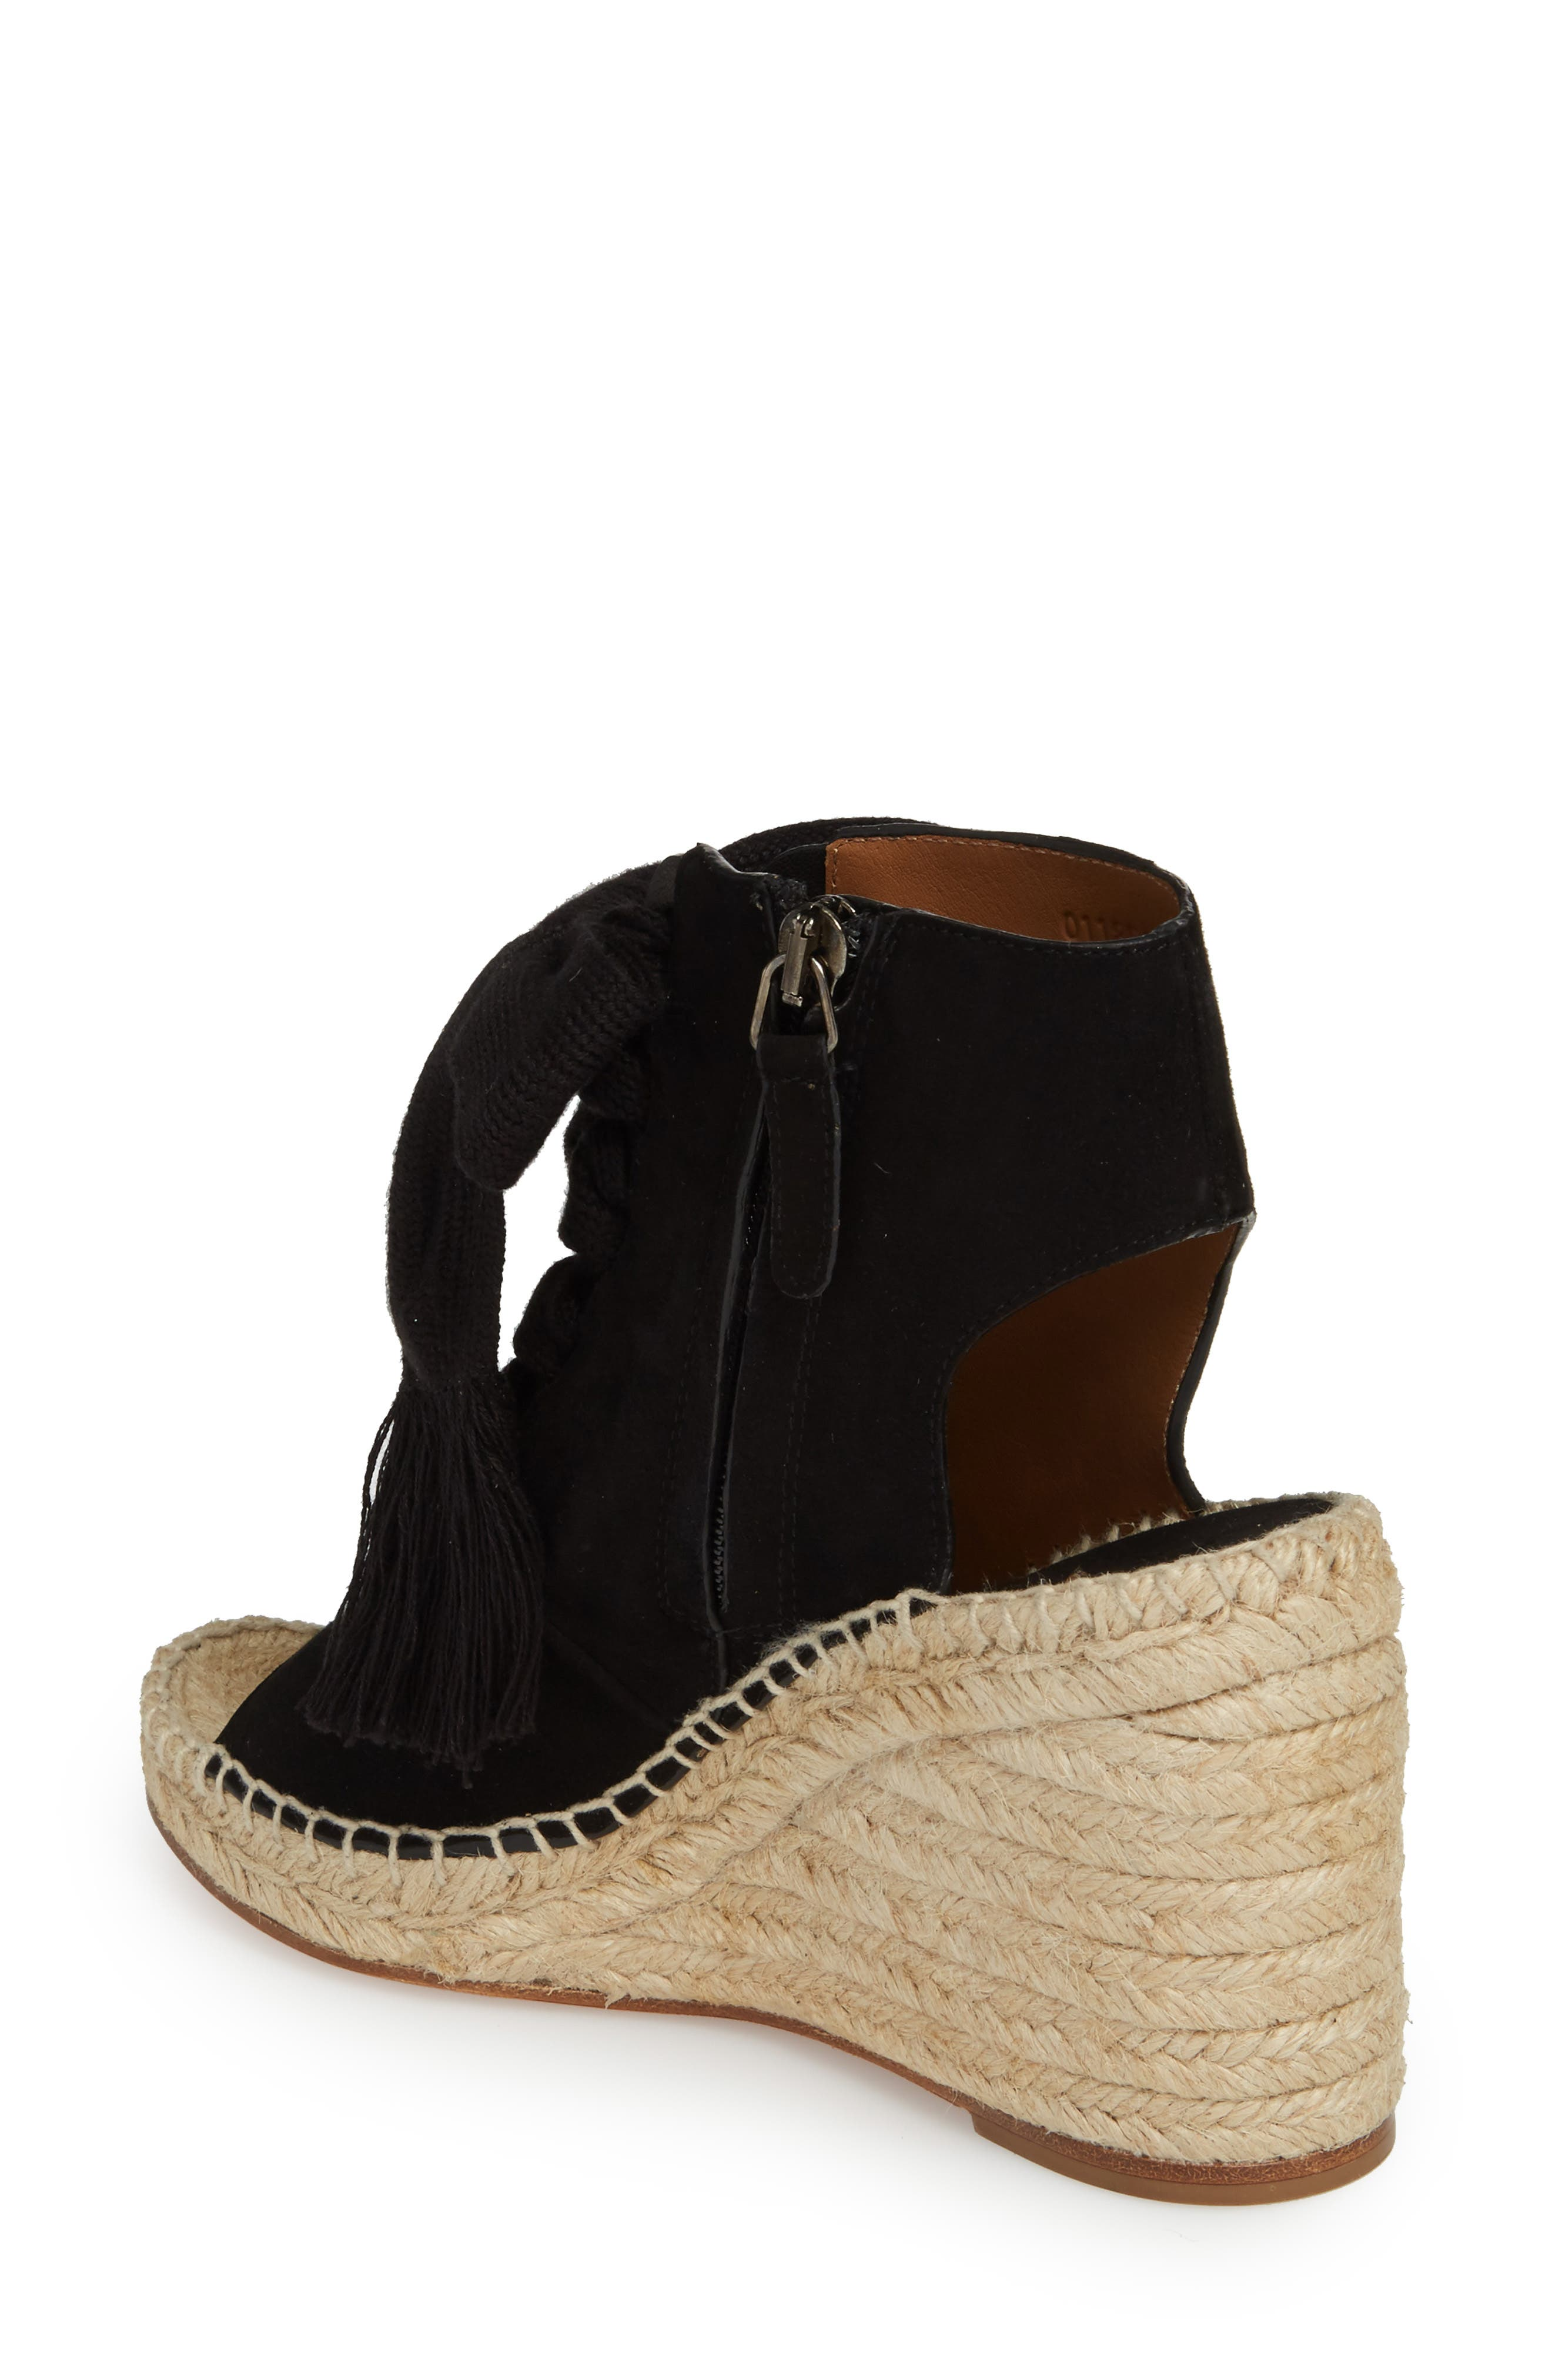 Harper Peep Toe Espadrille Bootie,                             Alternate thumbnail 3, color,